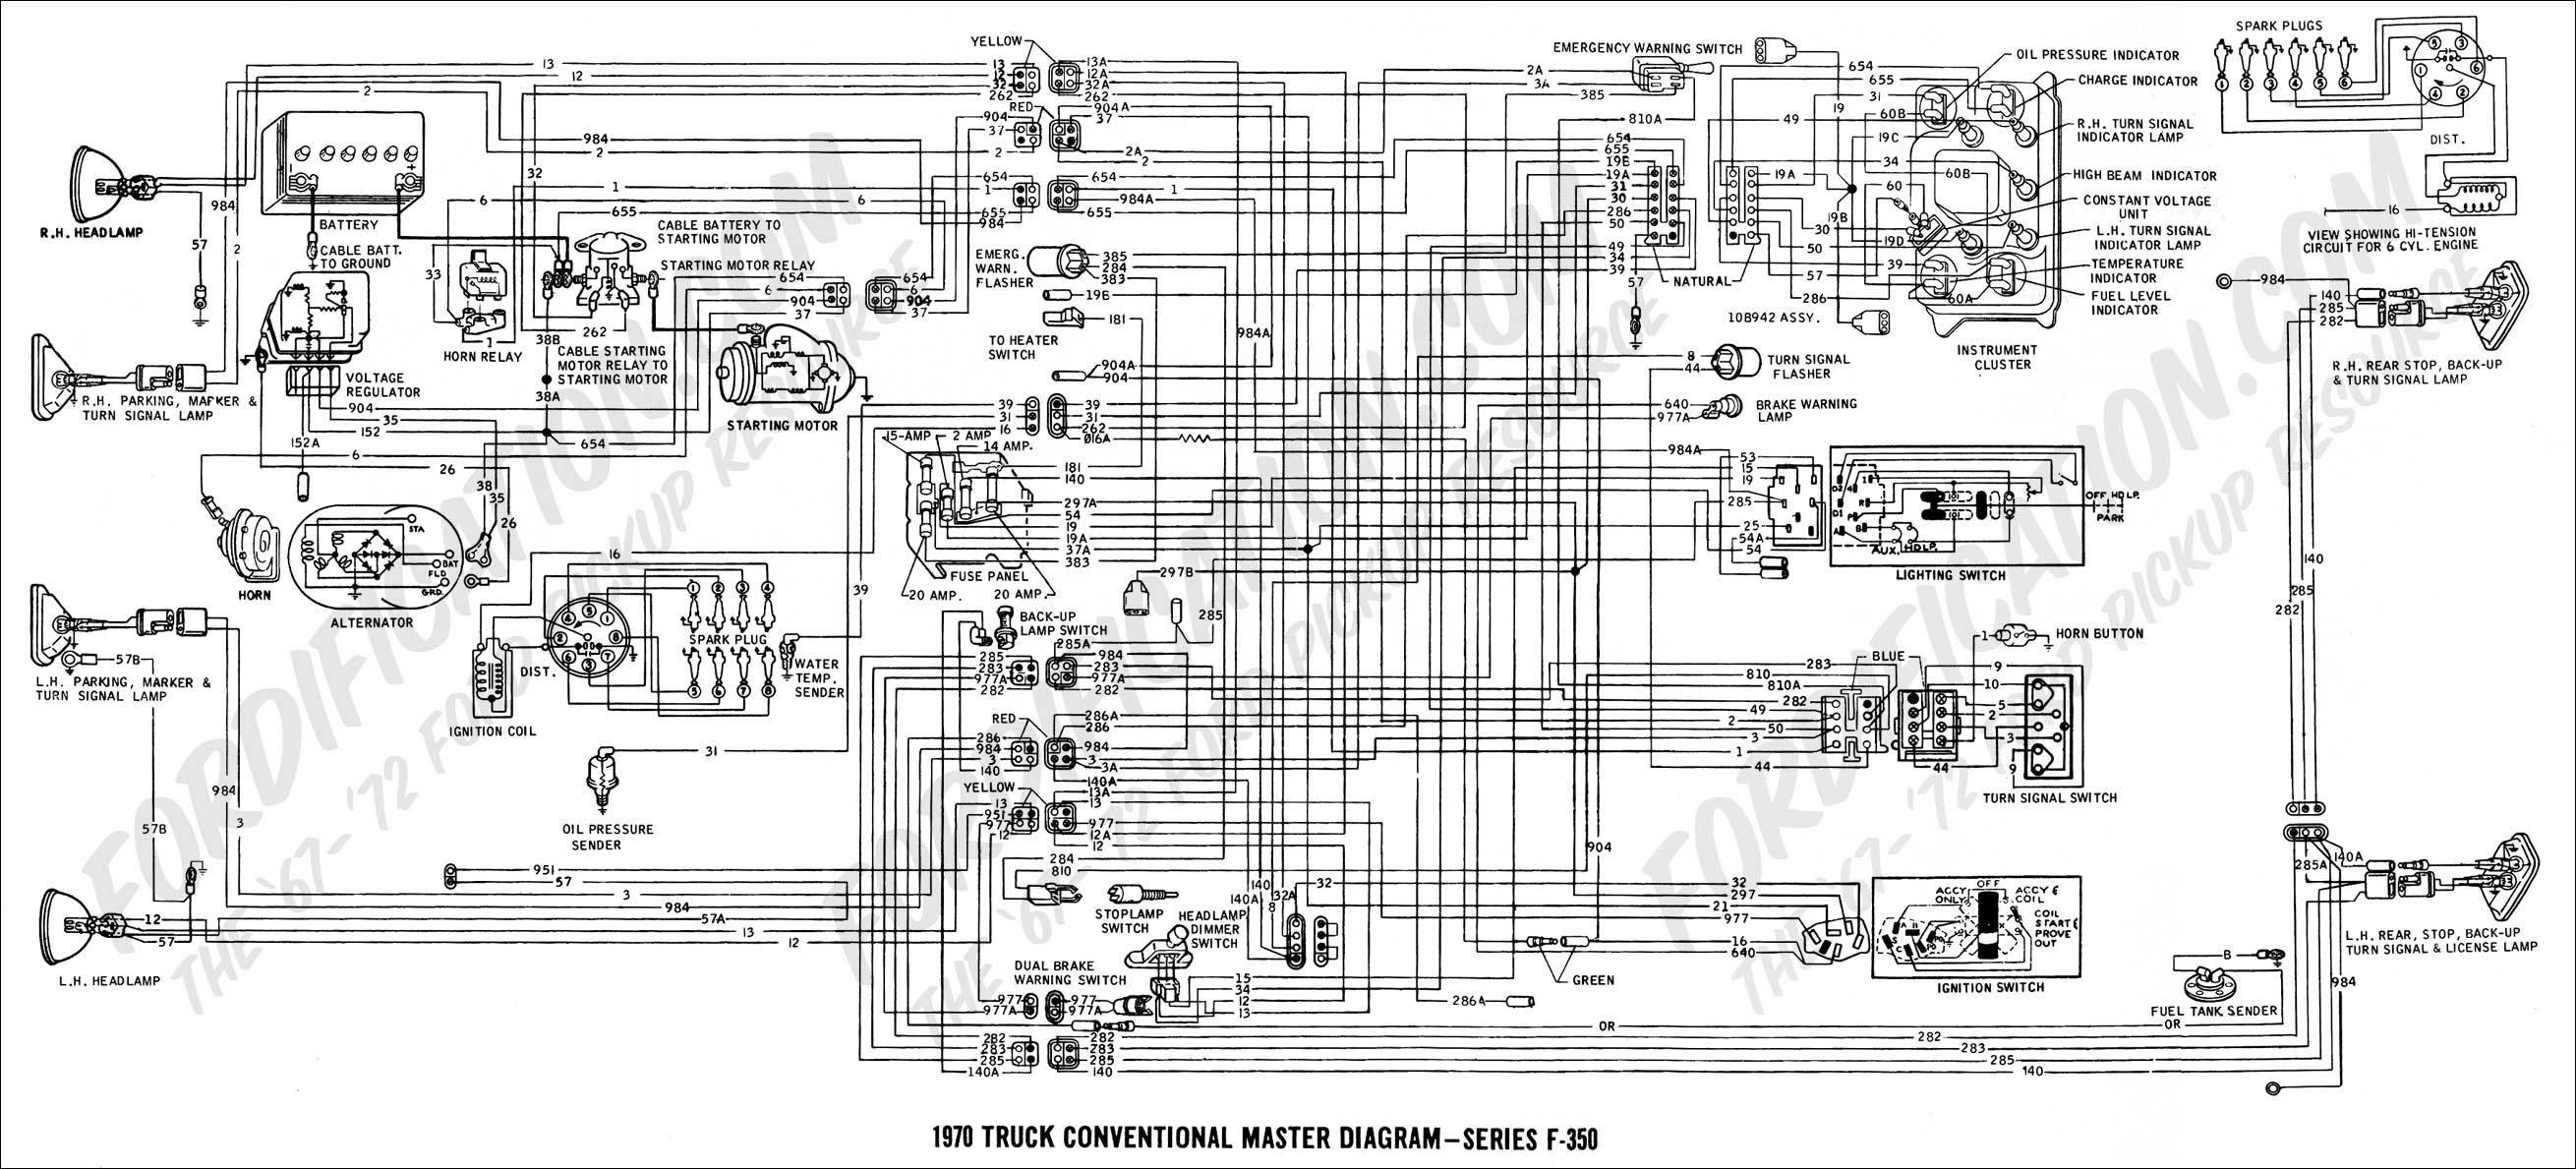 Jeep Cherokee Engine Diagram Transfer Switch Wiring Diagram Models V V V V  Of Jeep Cherokee Engine Diagram 1992